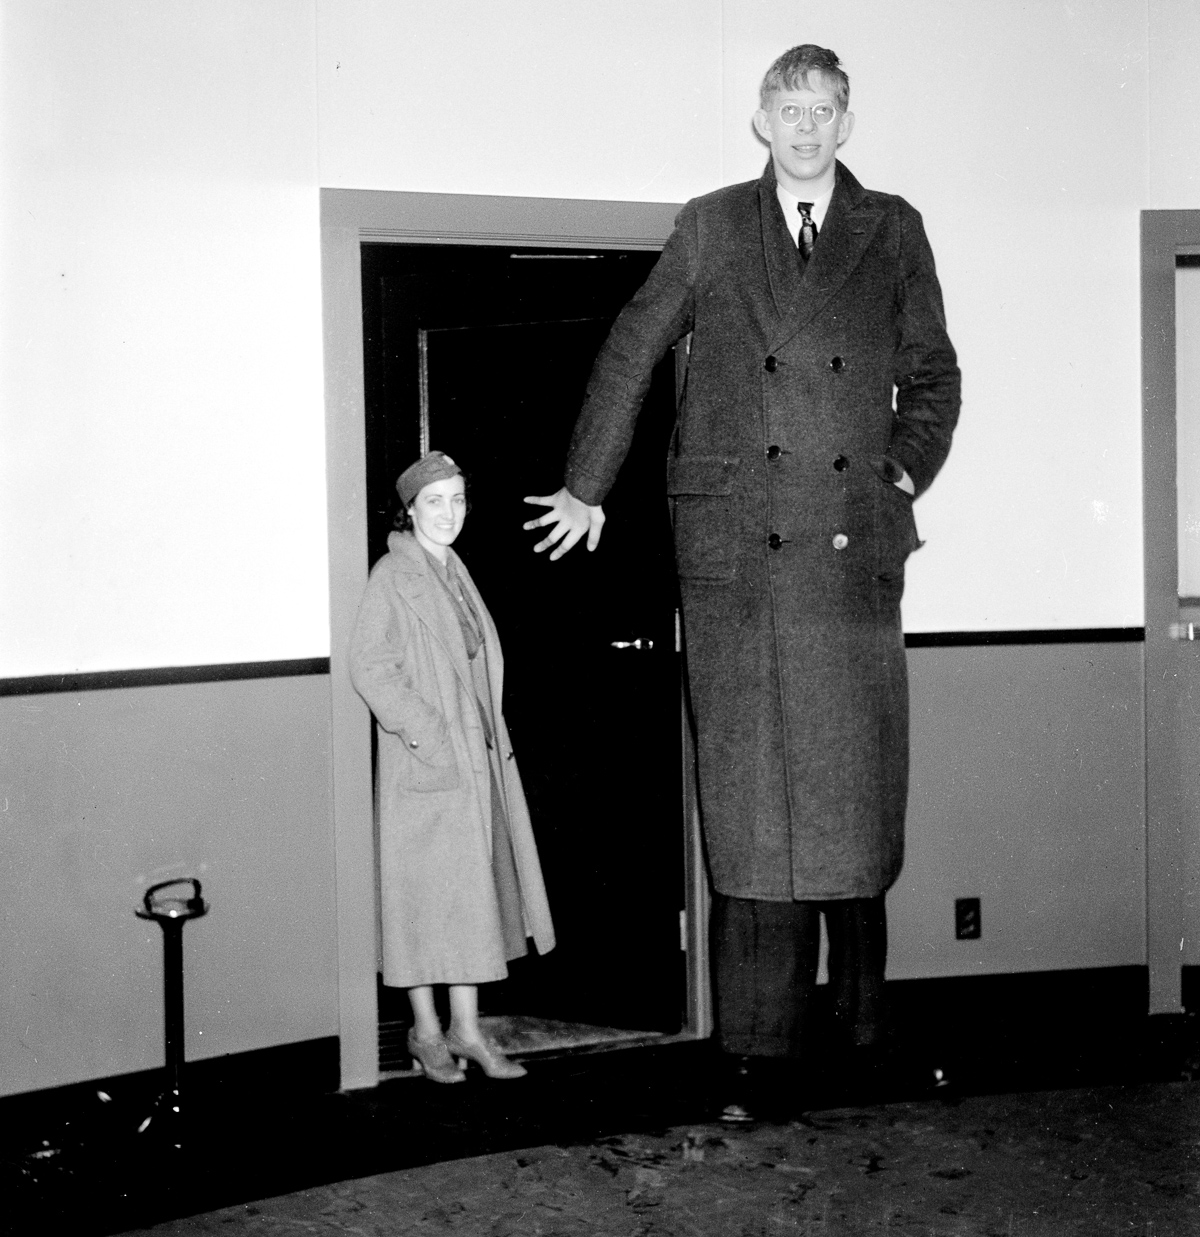 This was the tallest man in history